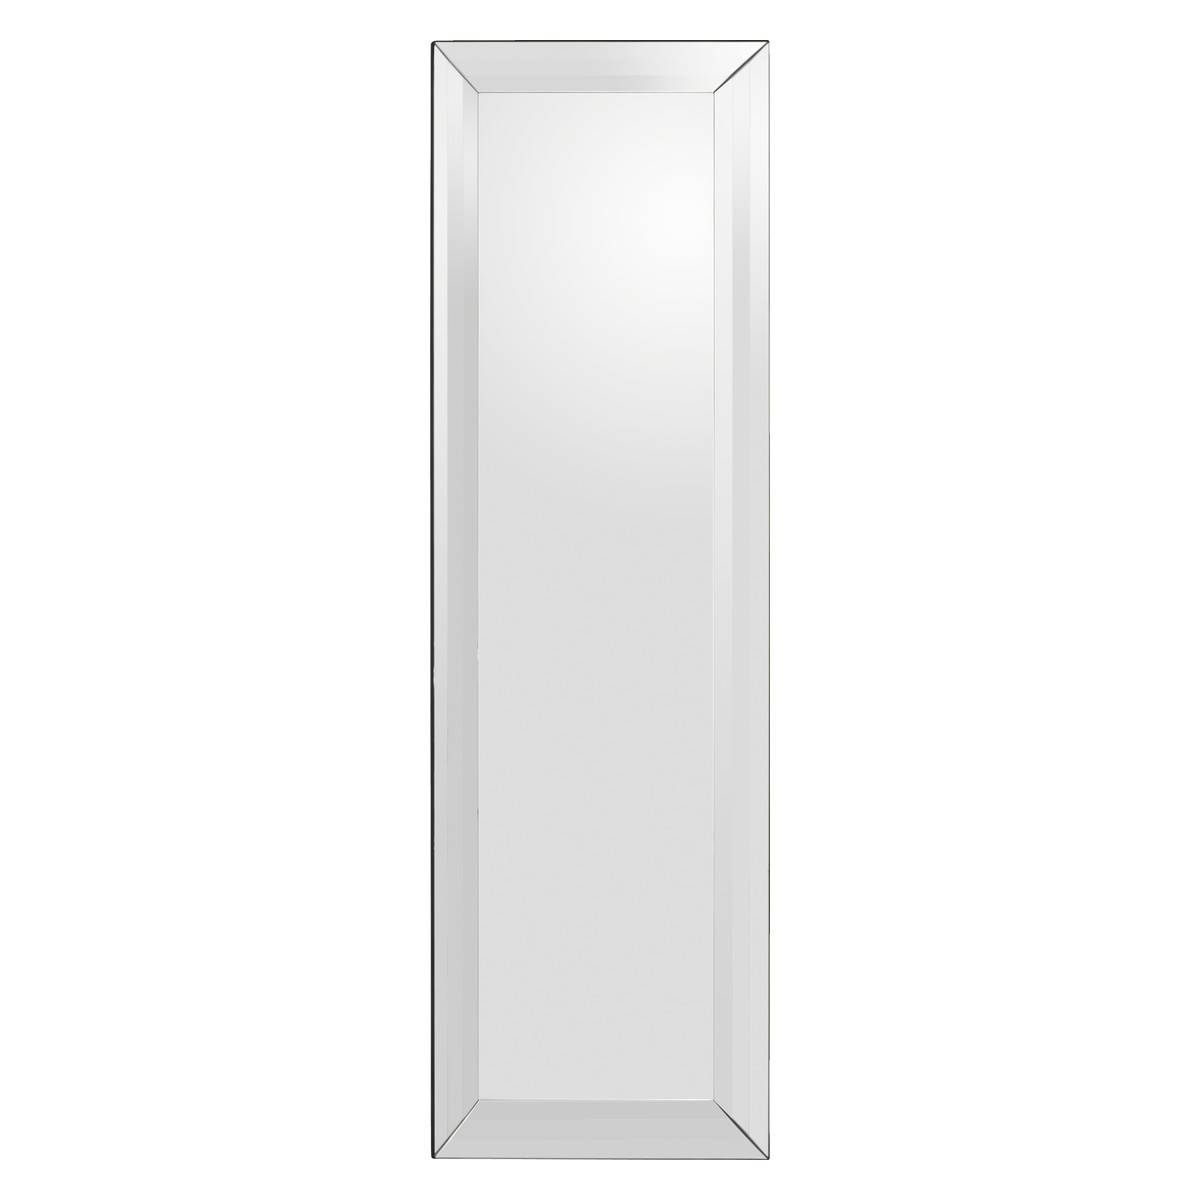 Luella 200X 60Cm Silver Rectangular Full Length Wall Mirror | Buy pertaining to Bevelled Wall Mirrors (Image 20 of 25)